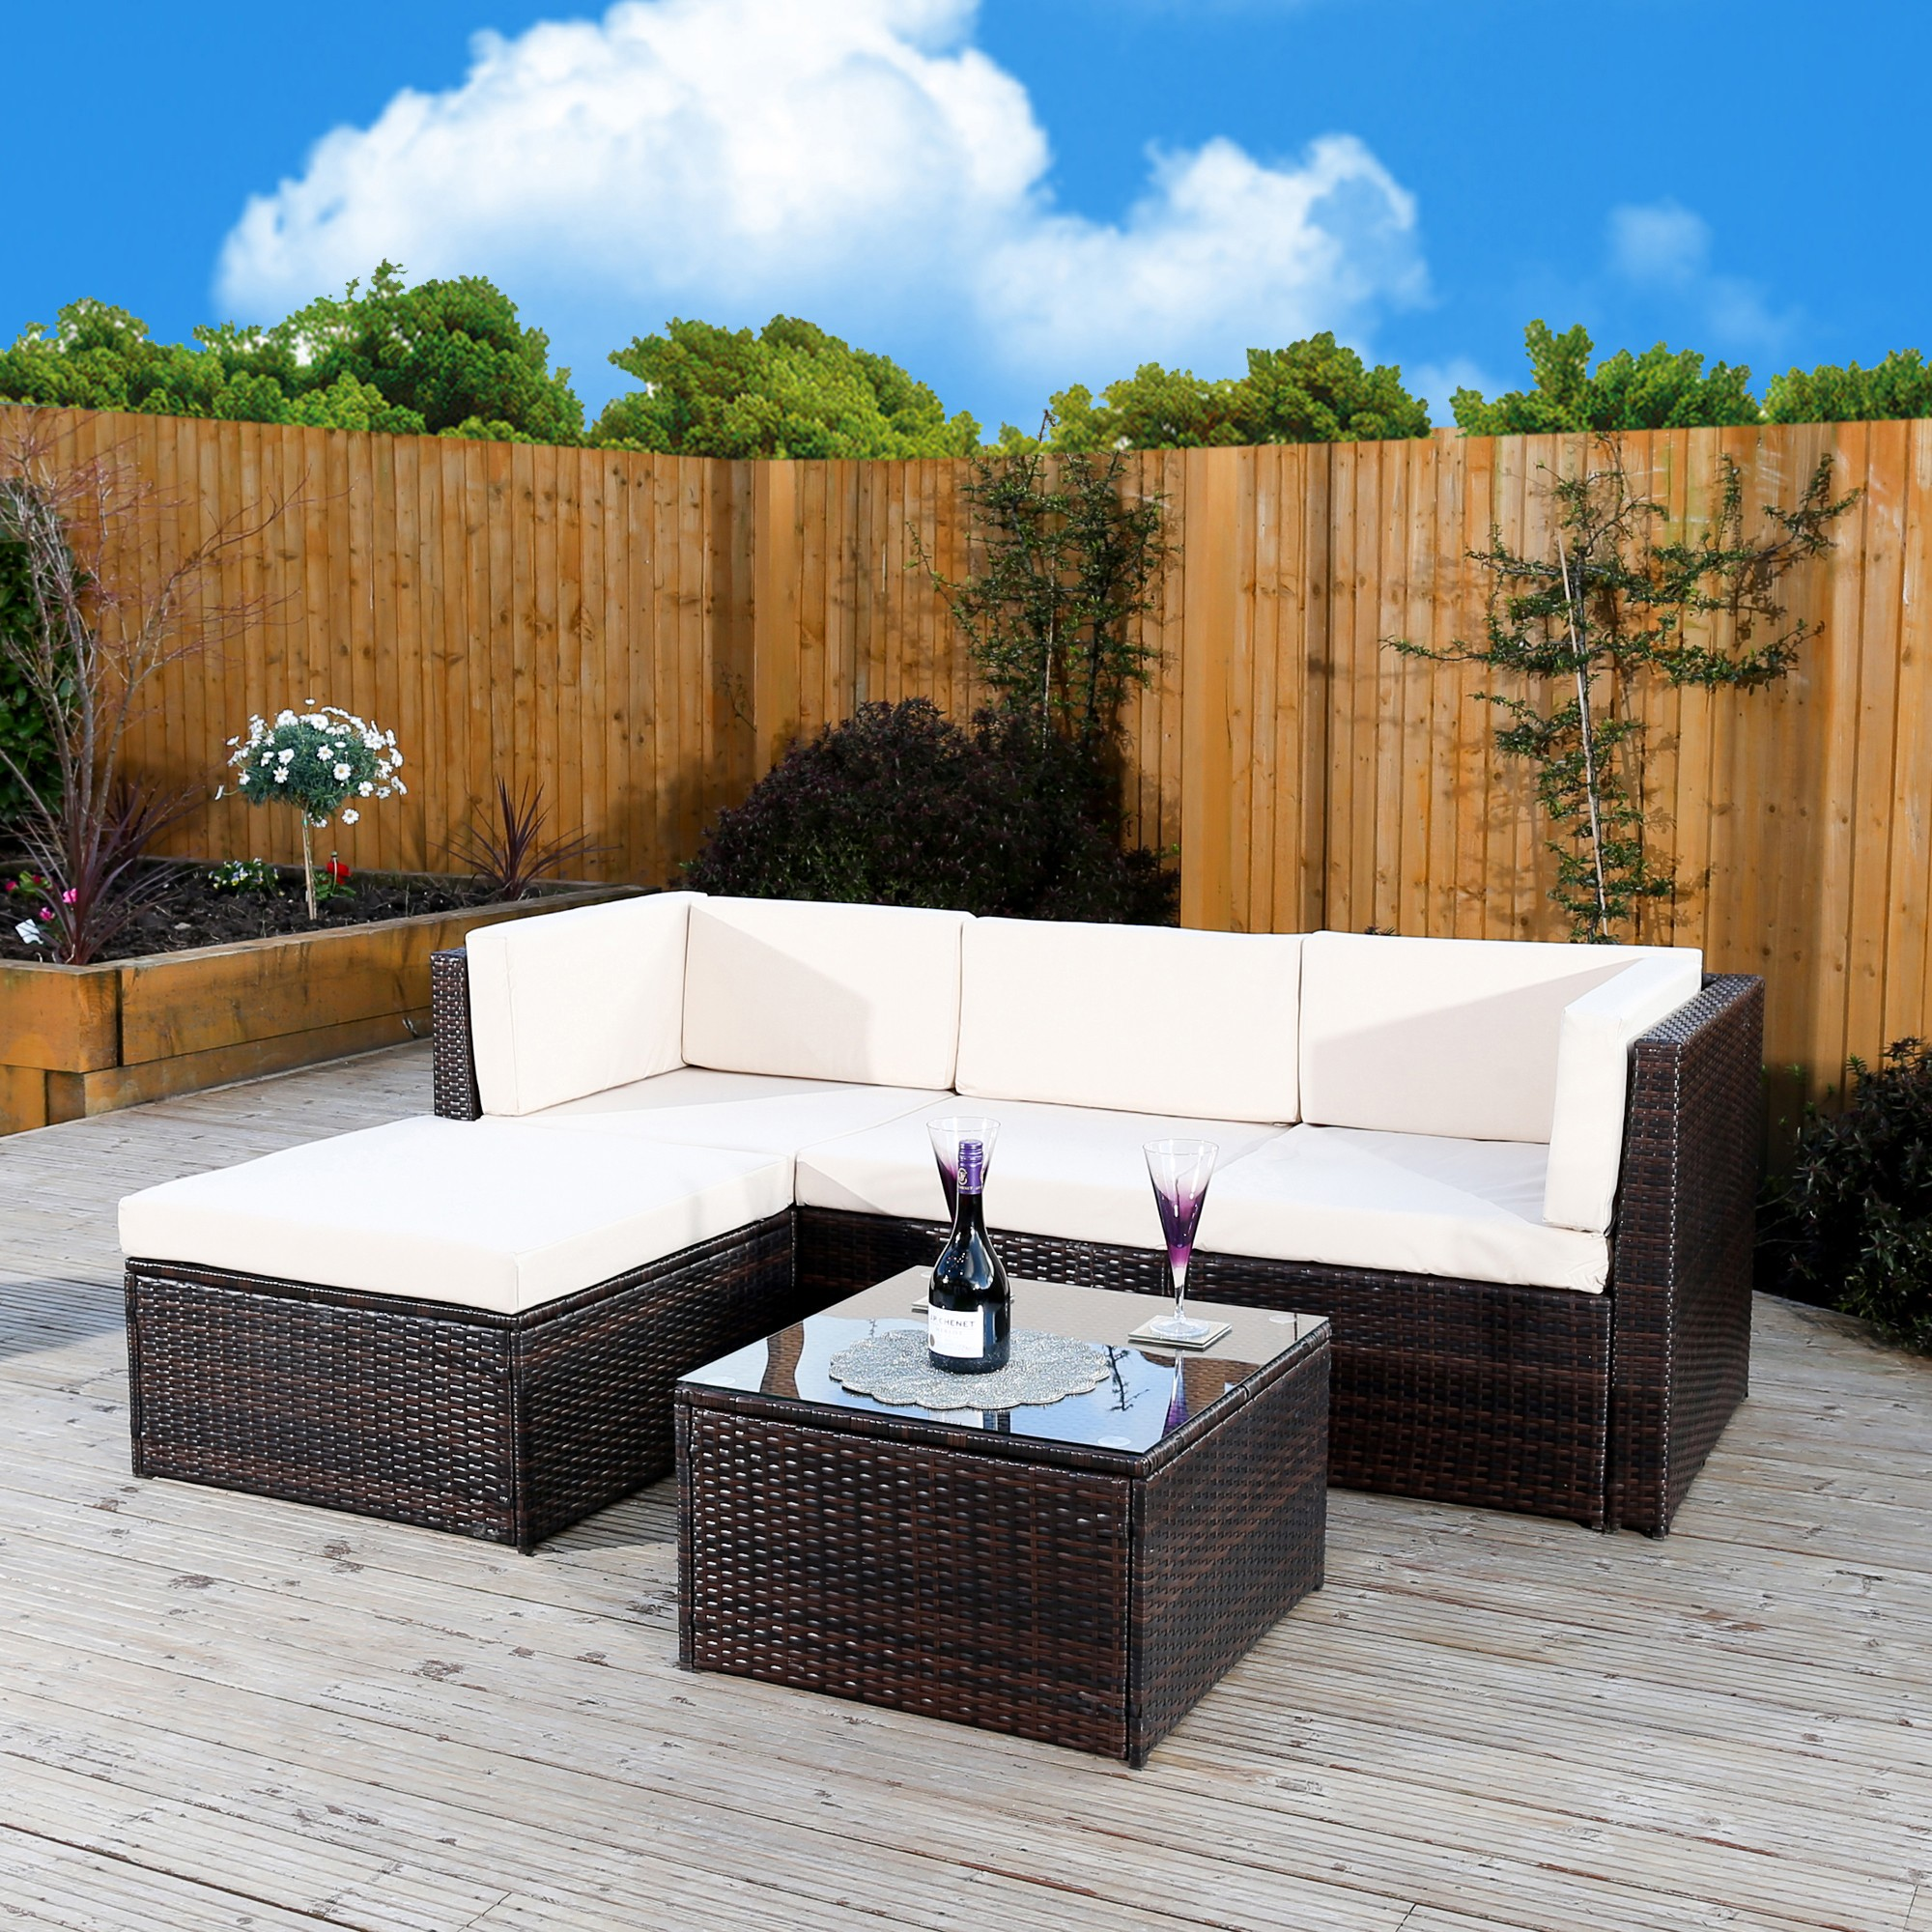 Rattan Corner Sofa Garden Set: Milano Rattan 5 Piece Corner Sofa In Brown Or Black Abreo